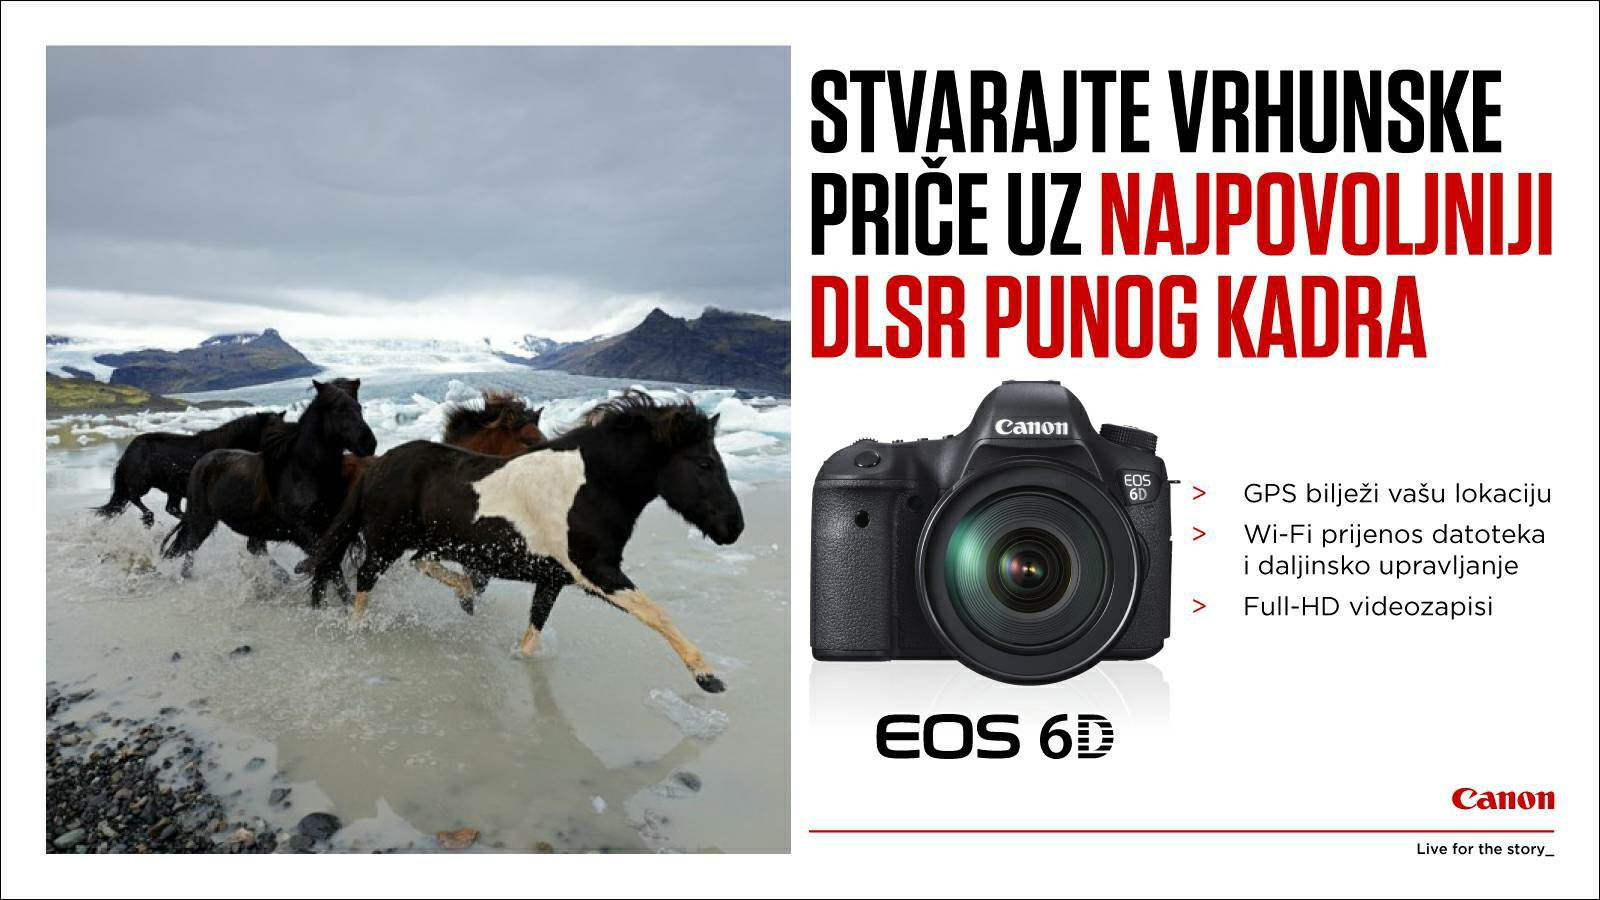 Canon EOS 6D Body GPS WIFI DSLR digitalni fotoaparat s Full